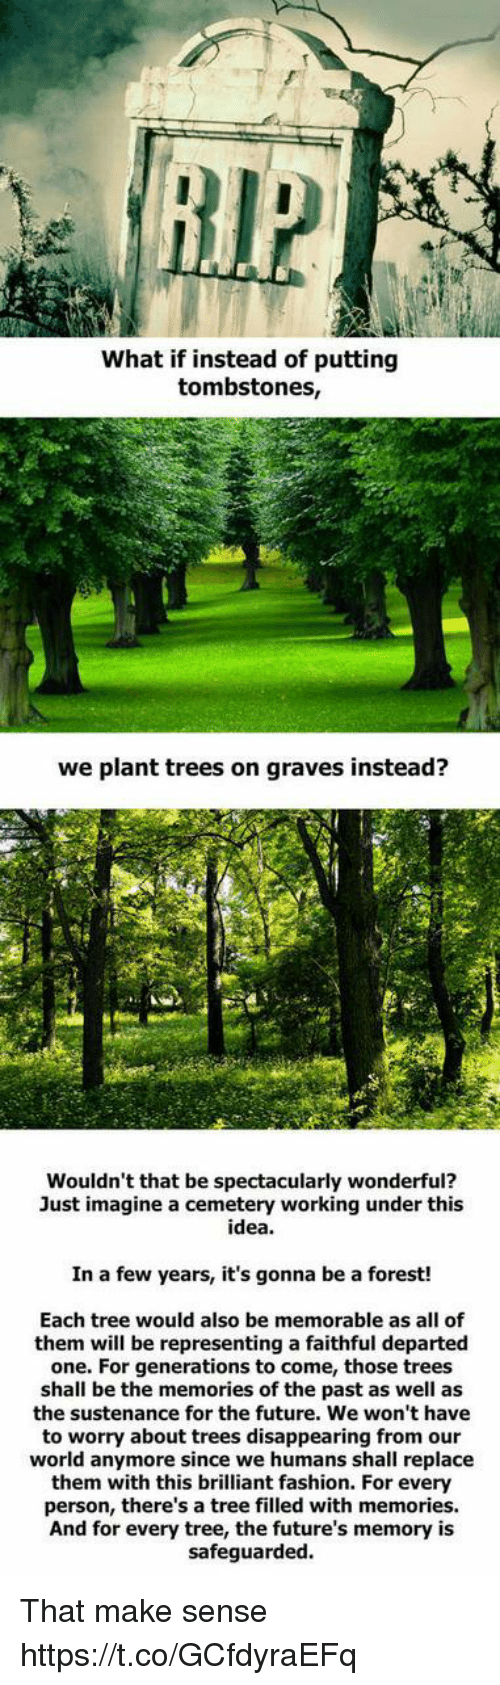 Fashion, Future, and Memes: What if instead of putting  tombstones,  we plant trees on graves instead?  Wouldn't that be spectacularly wonderful?  Just imagine a cemetery working under this  idea.  In a few years, it's gonna be a forest!  Each tree would also be memorable as all of  them will be representing a faithful departed  one. For generations to come, those trees  shall be the memories of the past as well as  the sustenance for the future. We won't have  to worry about trees disappearing from our  world anymore since we humans shall replace  them with this brilliant fashion. For every  person, there's a tree filled with memories.  And for every tree, the future's memory is  safeguarded That make sense https://t.co/GCfdyraEFq